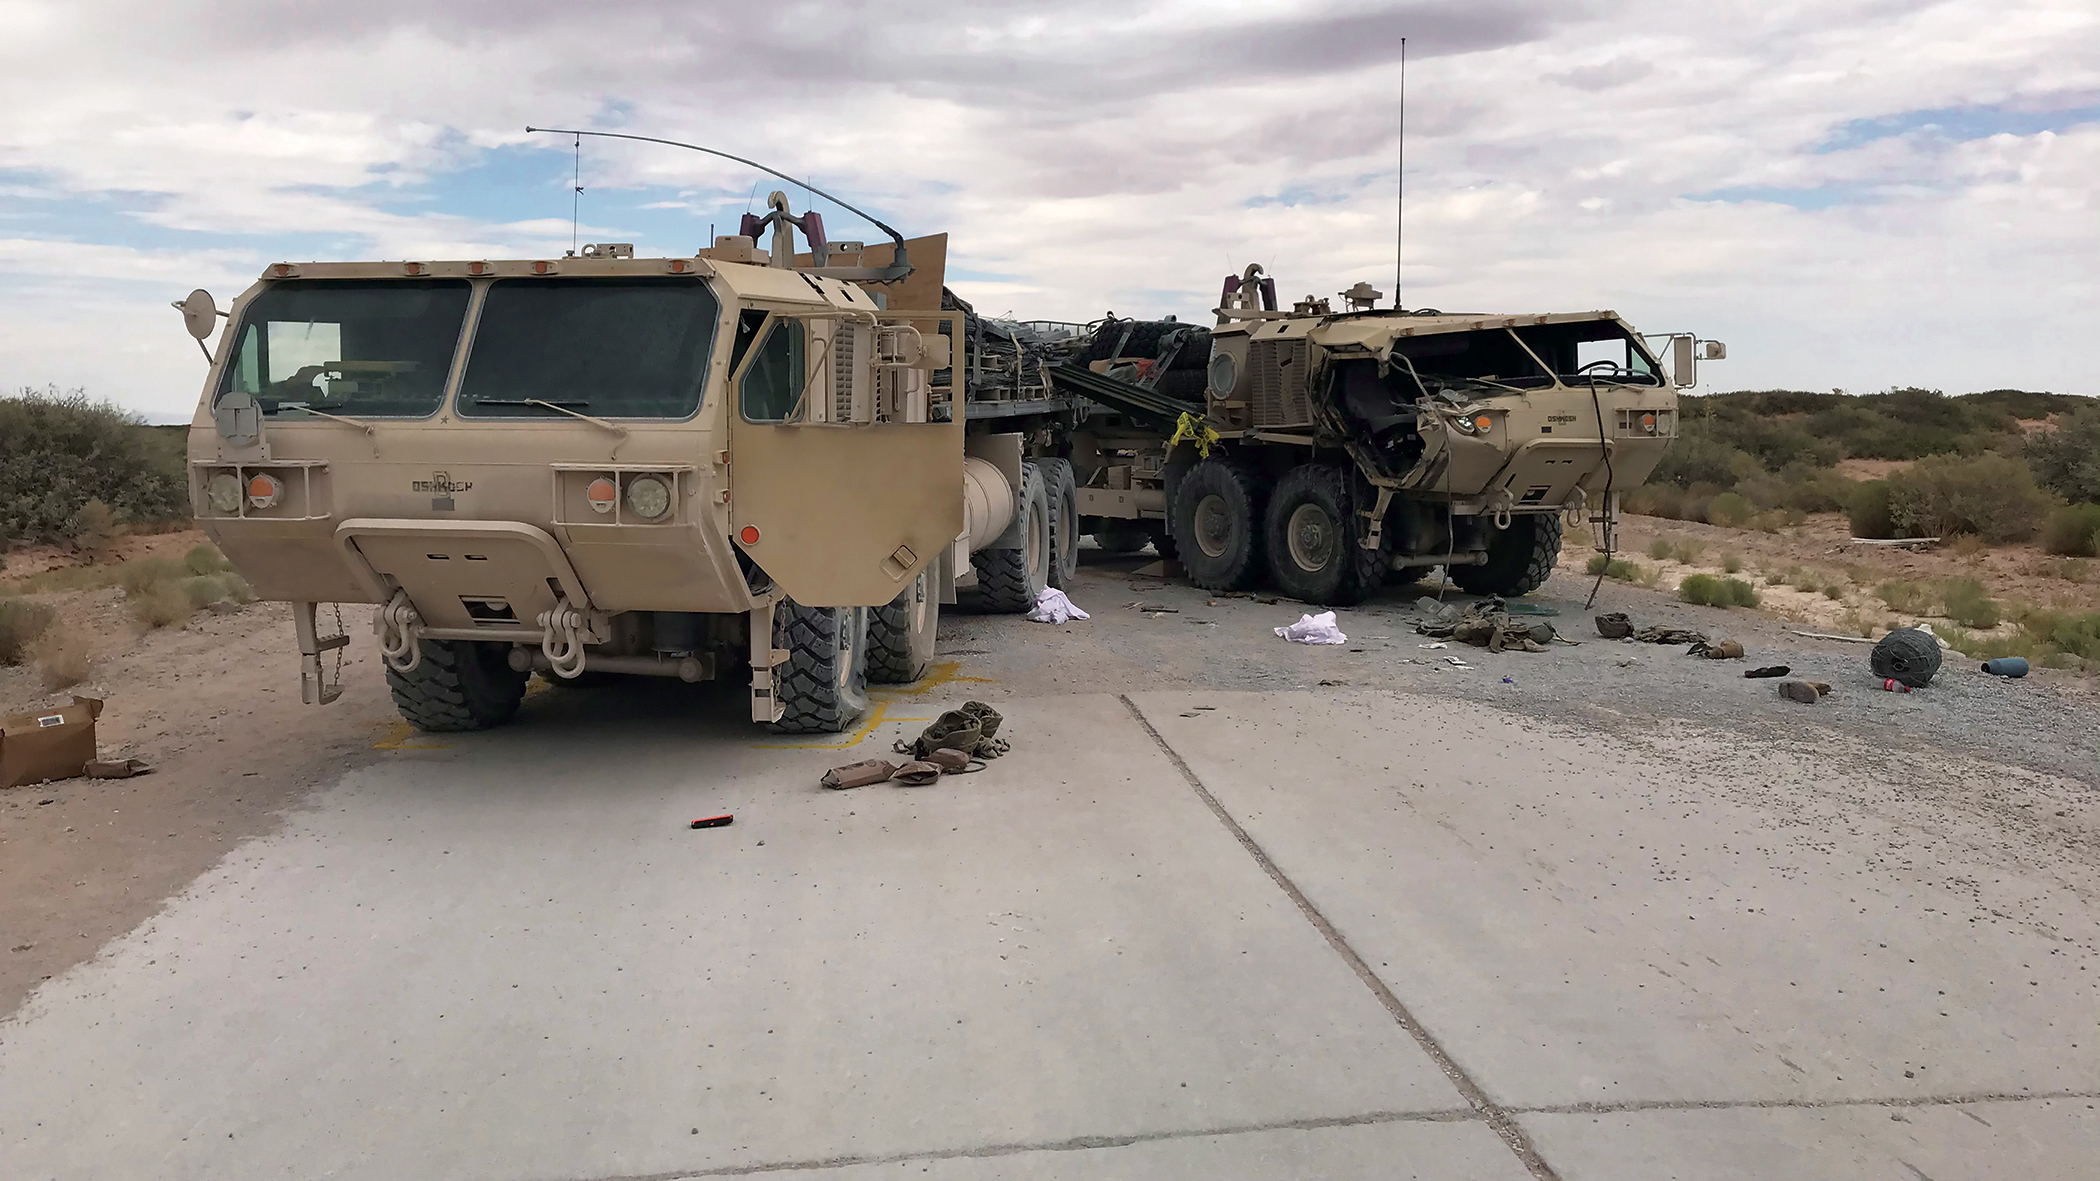 Two heavily damaged M1120A4 trucks